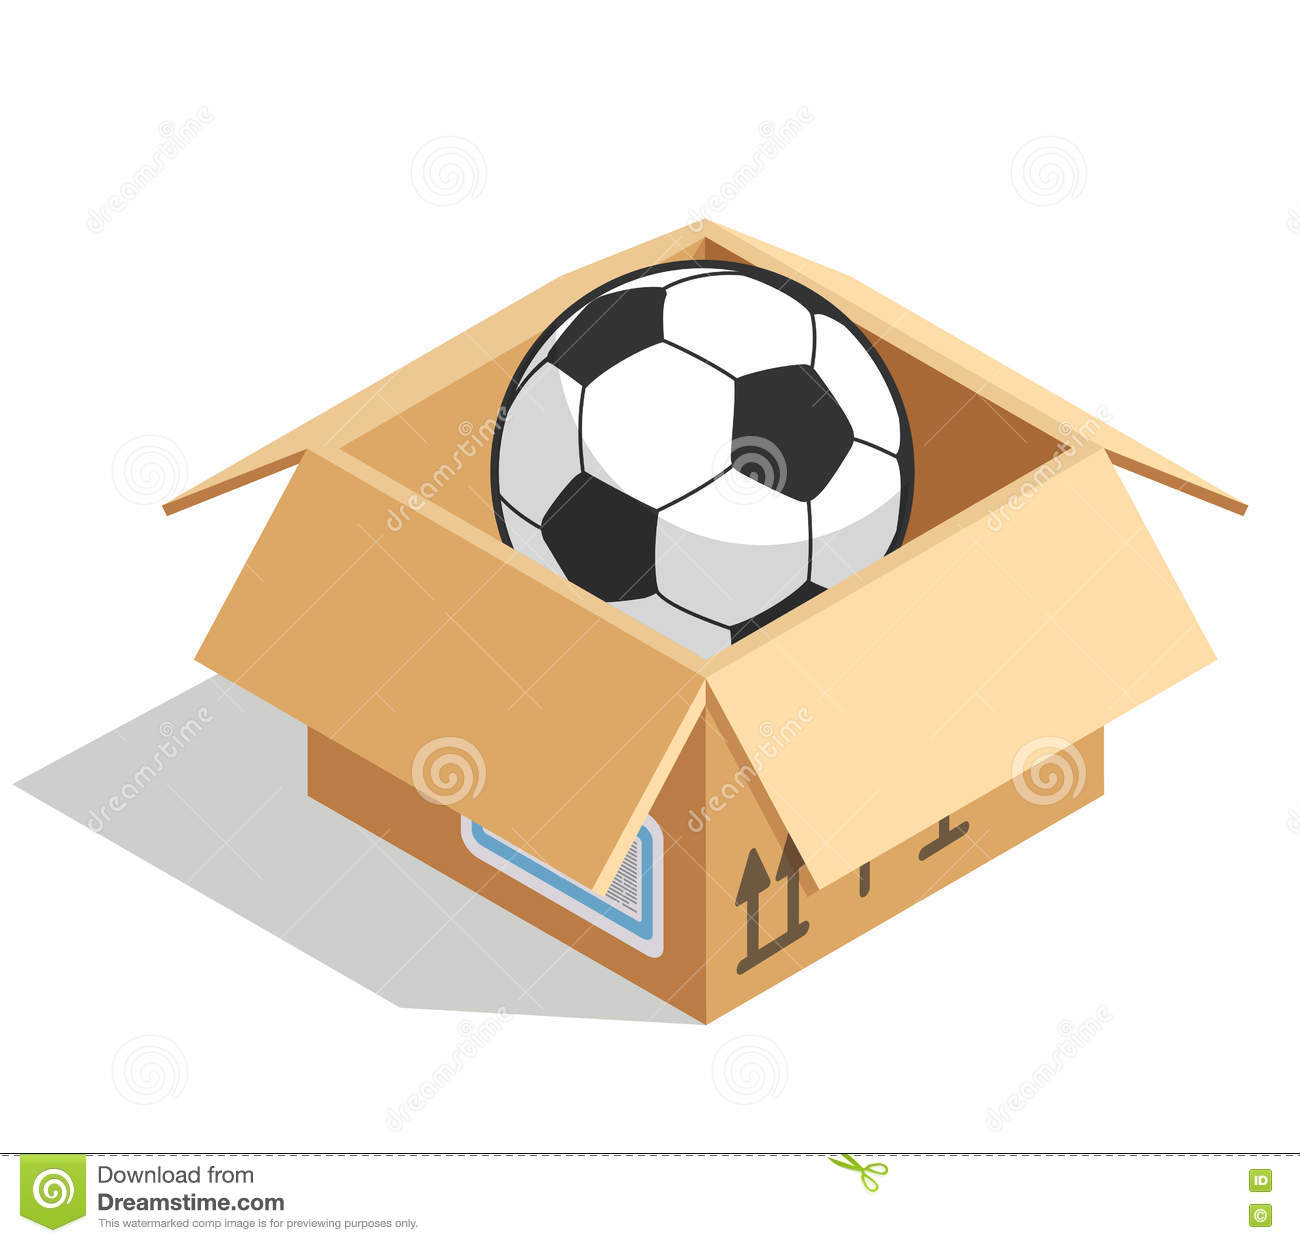 banner royalty free Ball box station . In the clipart